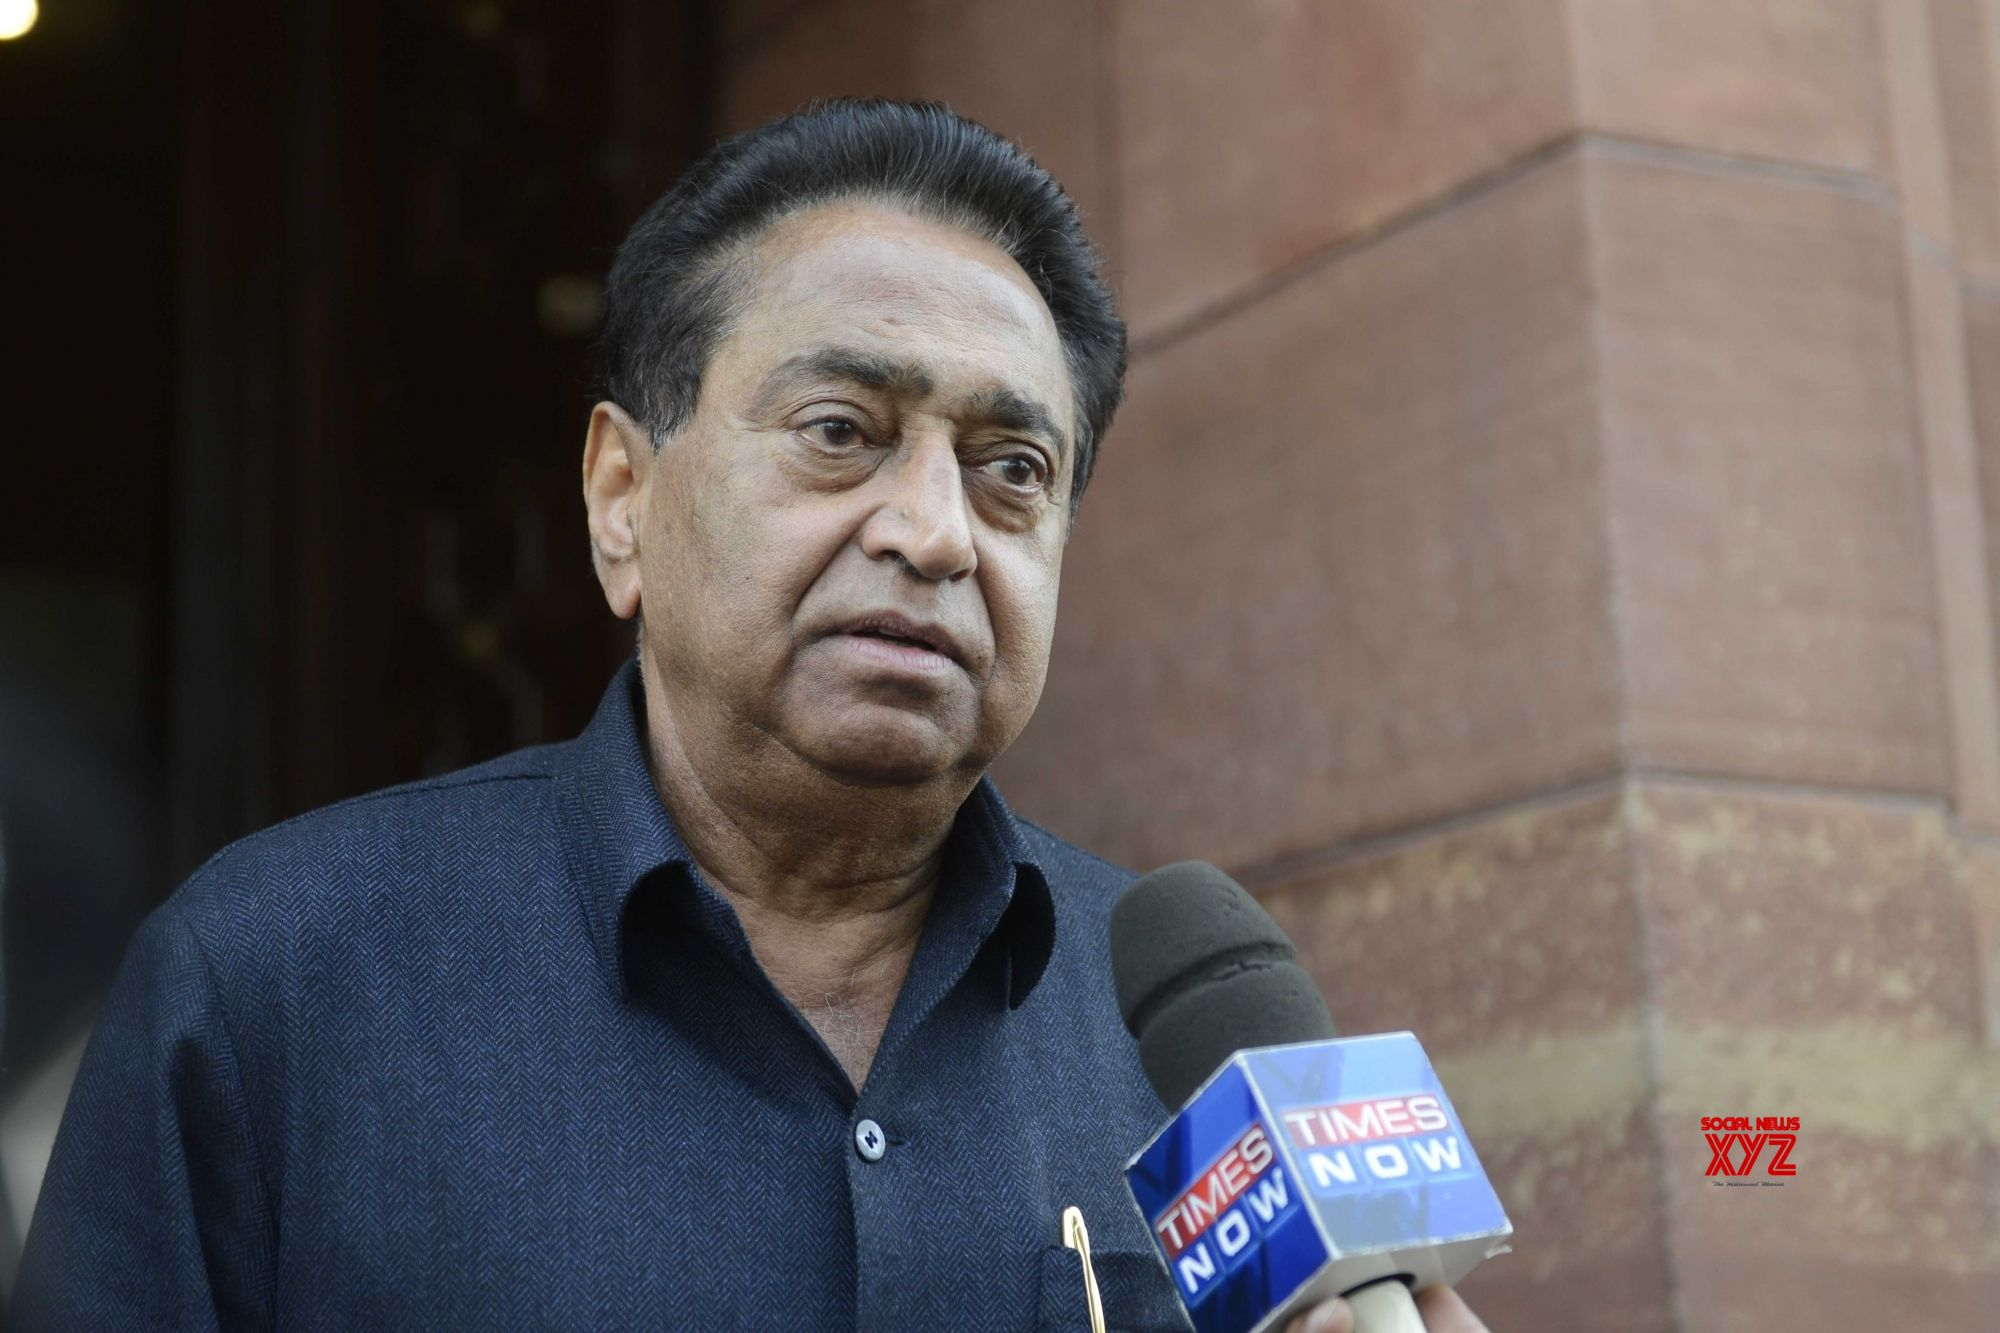 Kamal Nath: A go-getter who combines experience with speed